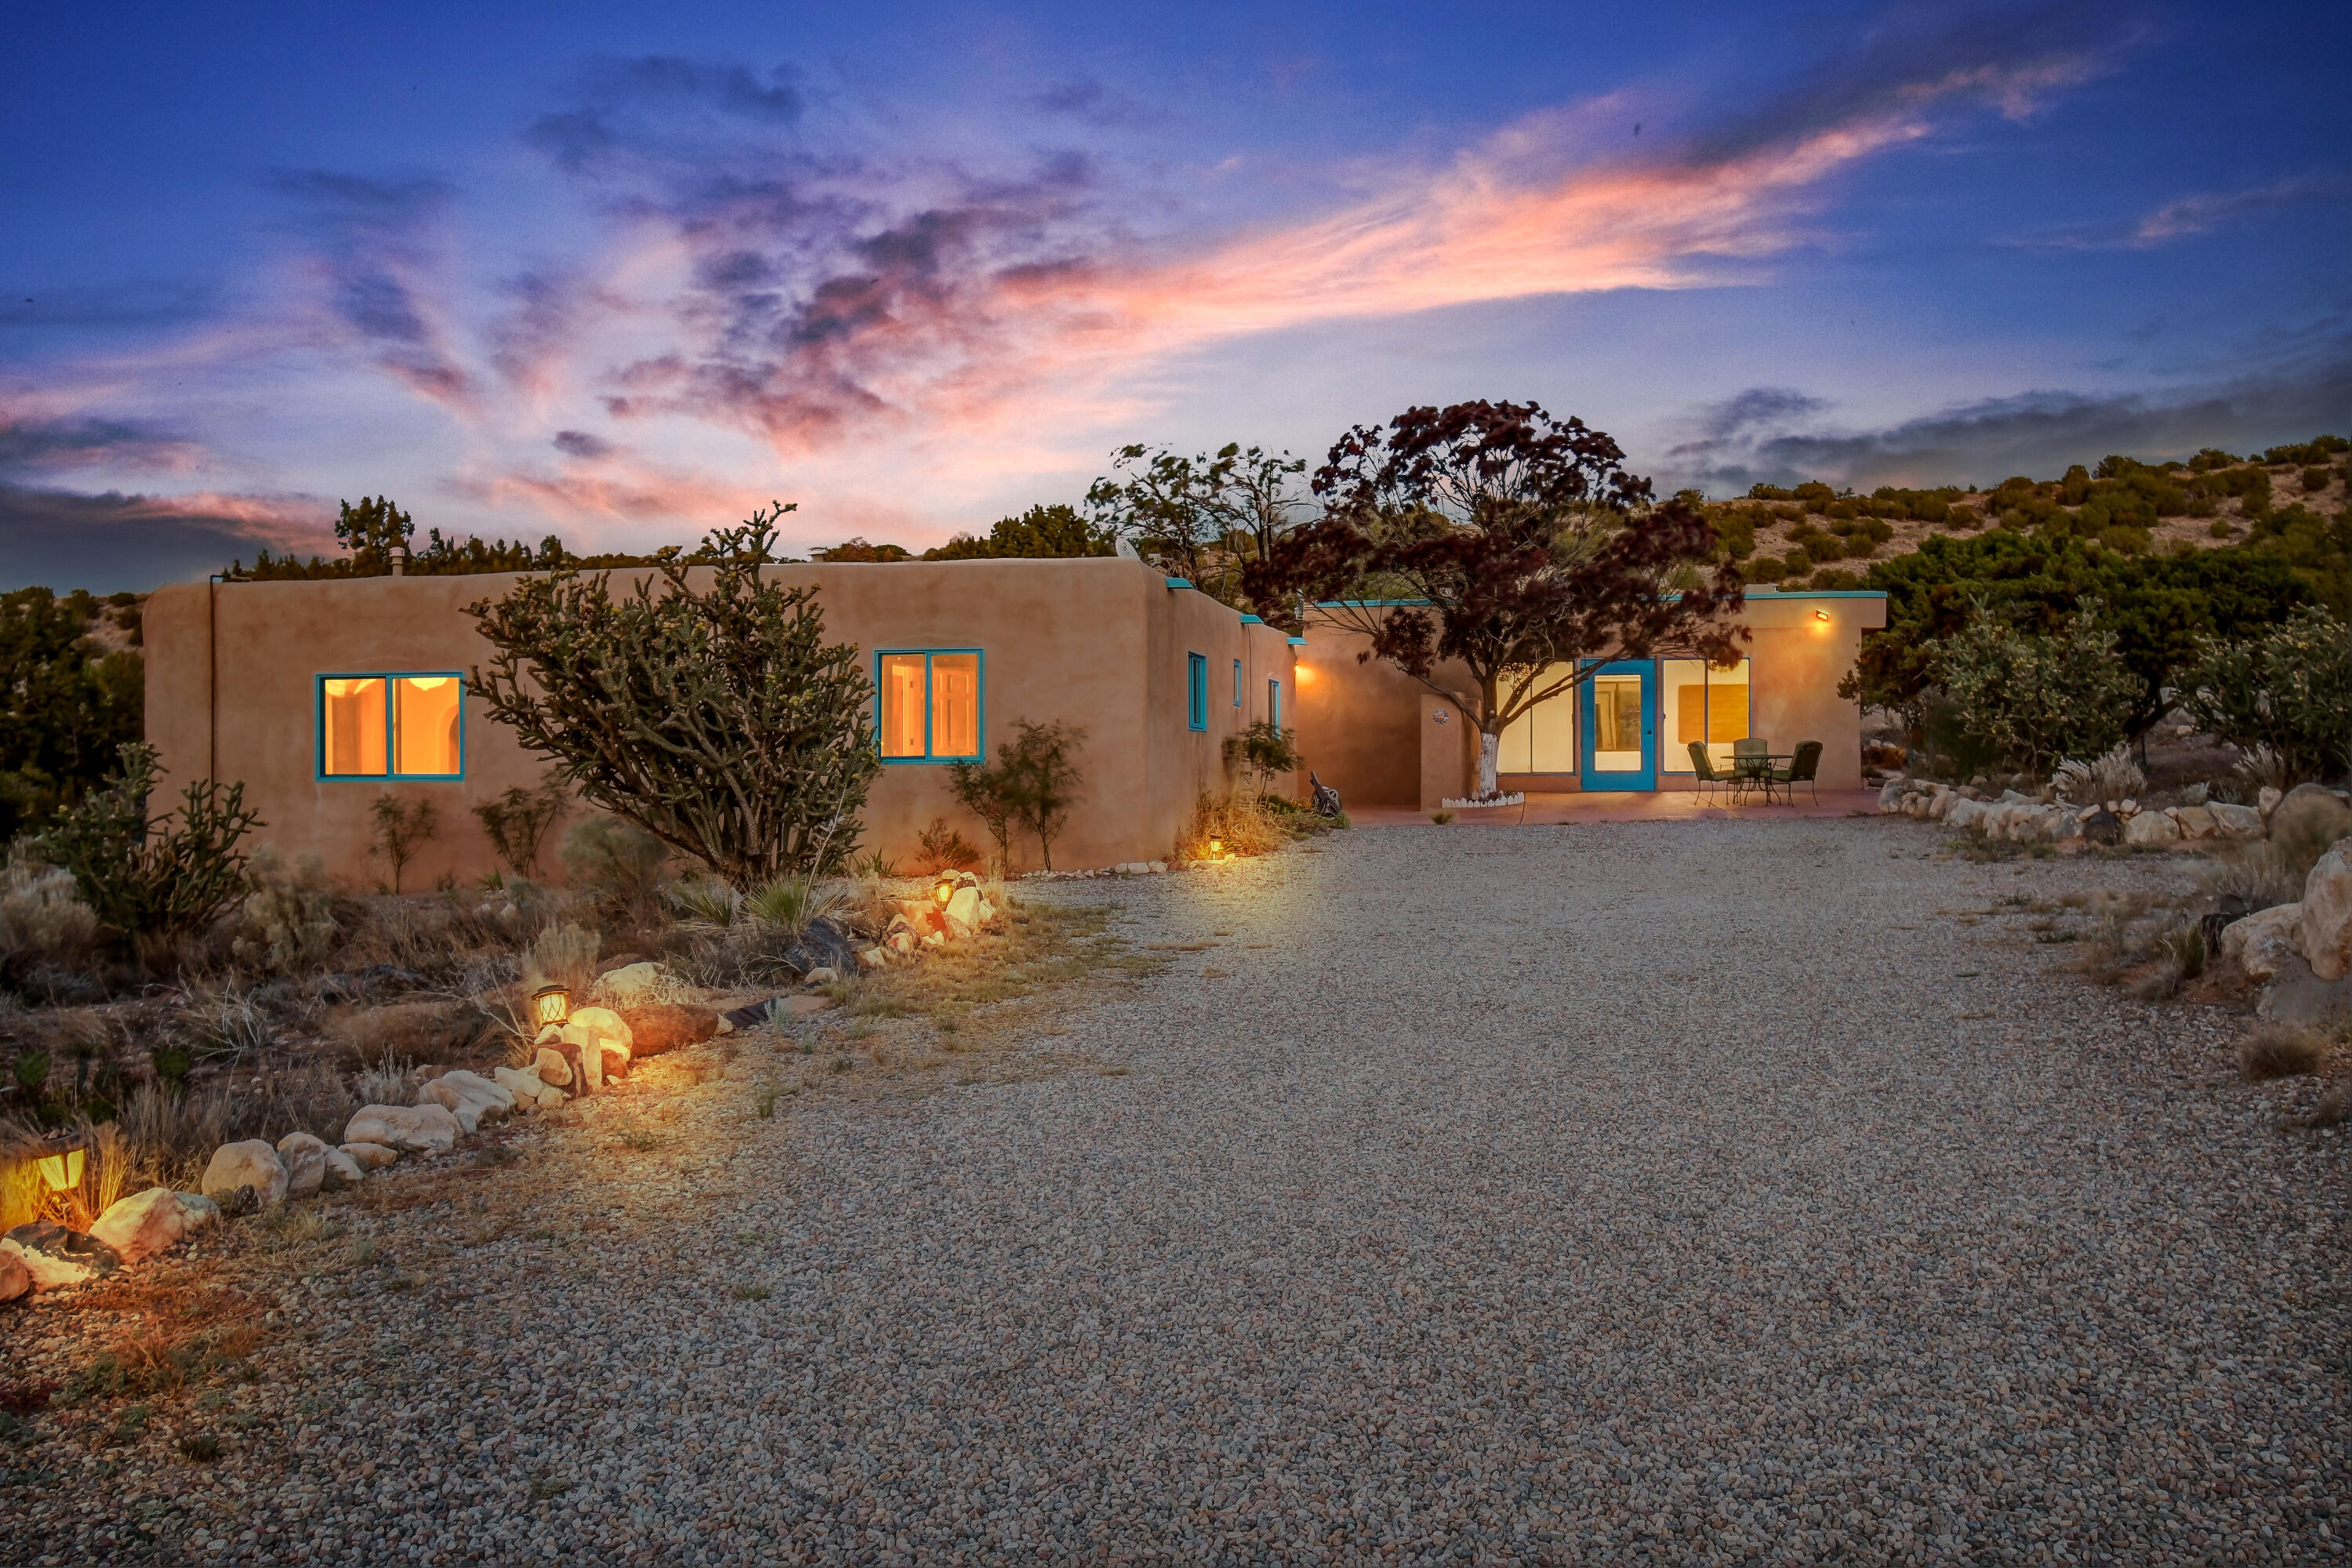 Welcome home to this country ranch style home nestled in the peaceful heart of Placitas. Enjoy incredible views from every angle of this property! Check out this home's (30x24) bonus space that opens up the possibility of TWO master suites or an additional living area! Newer 200 ft well, newer roof, new stucco, new water heater and new paint. Bathrooms and kitchen recently remodeled. Property offers plenty of outdoor living space, garden area and even a separate private deck! Don't miss your opportunity to tour this home and make it your own!